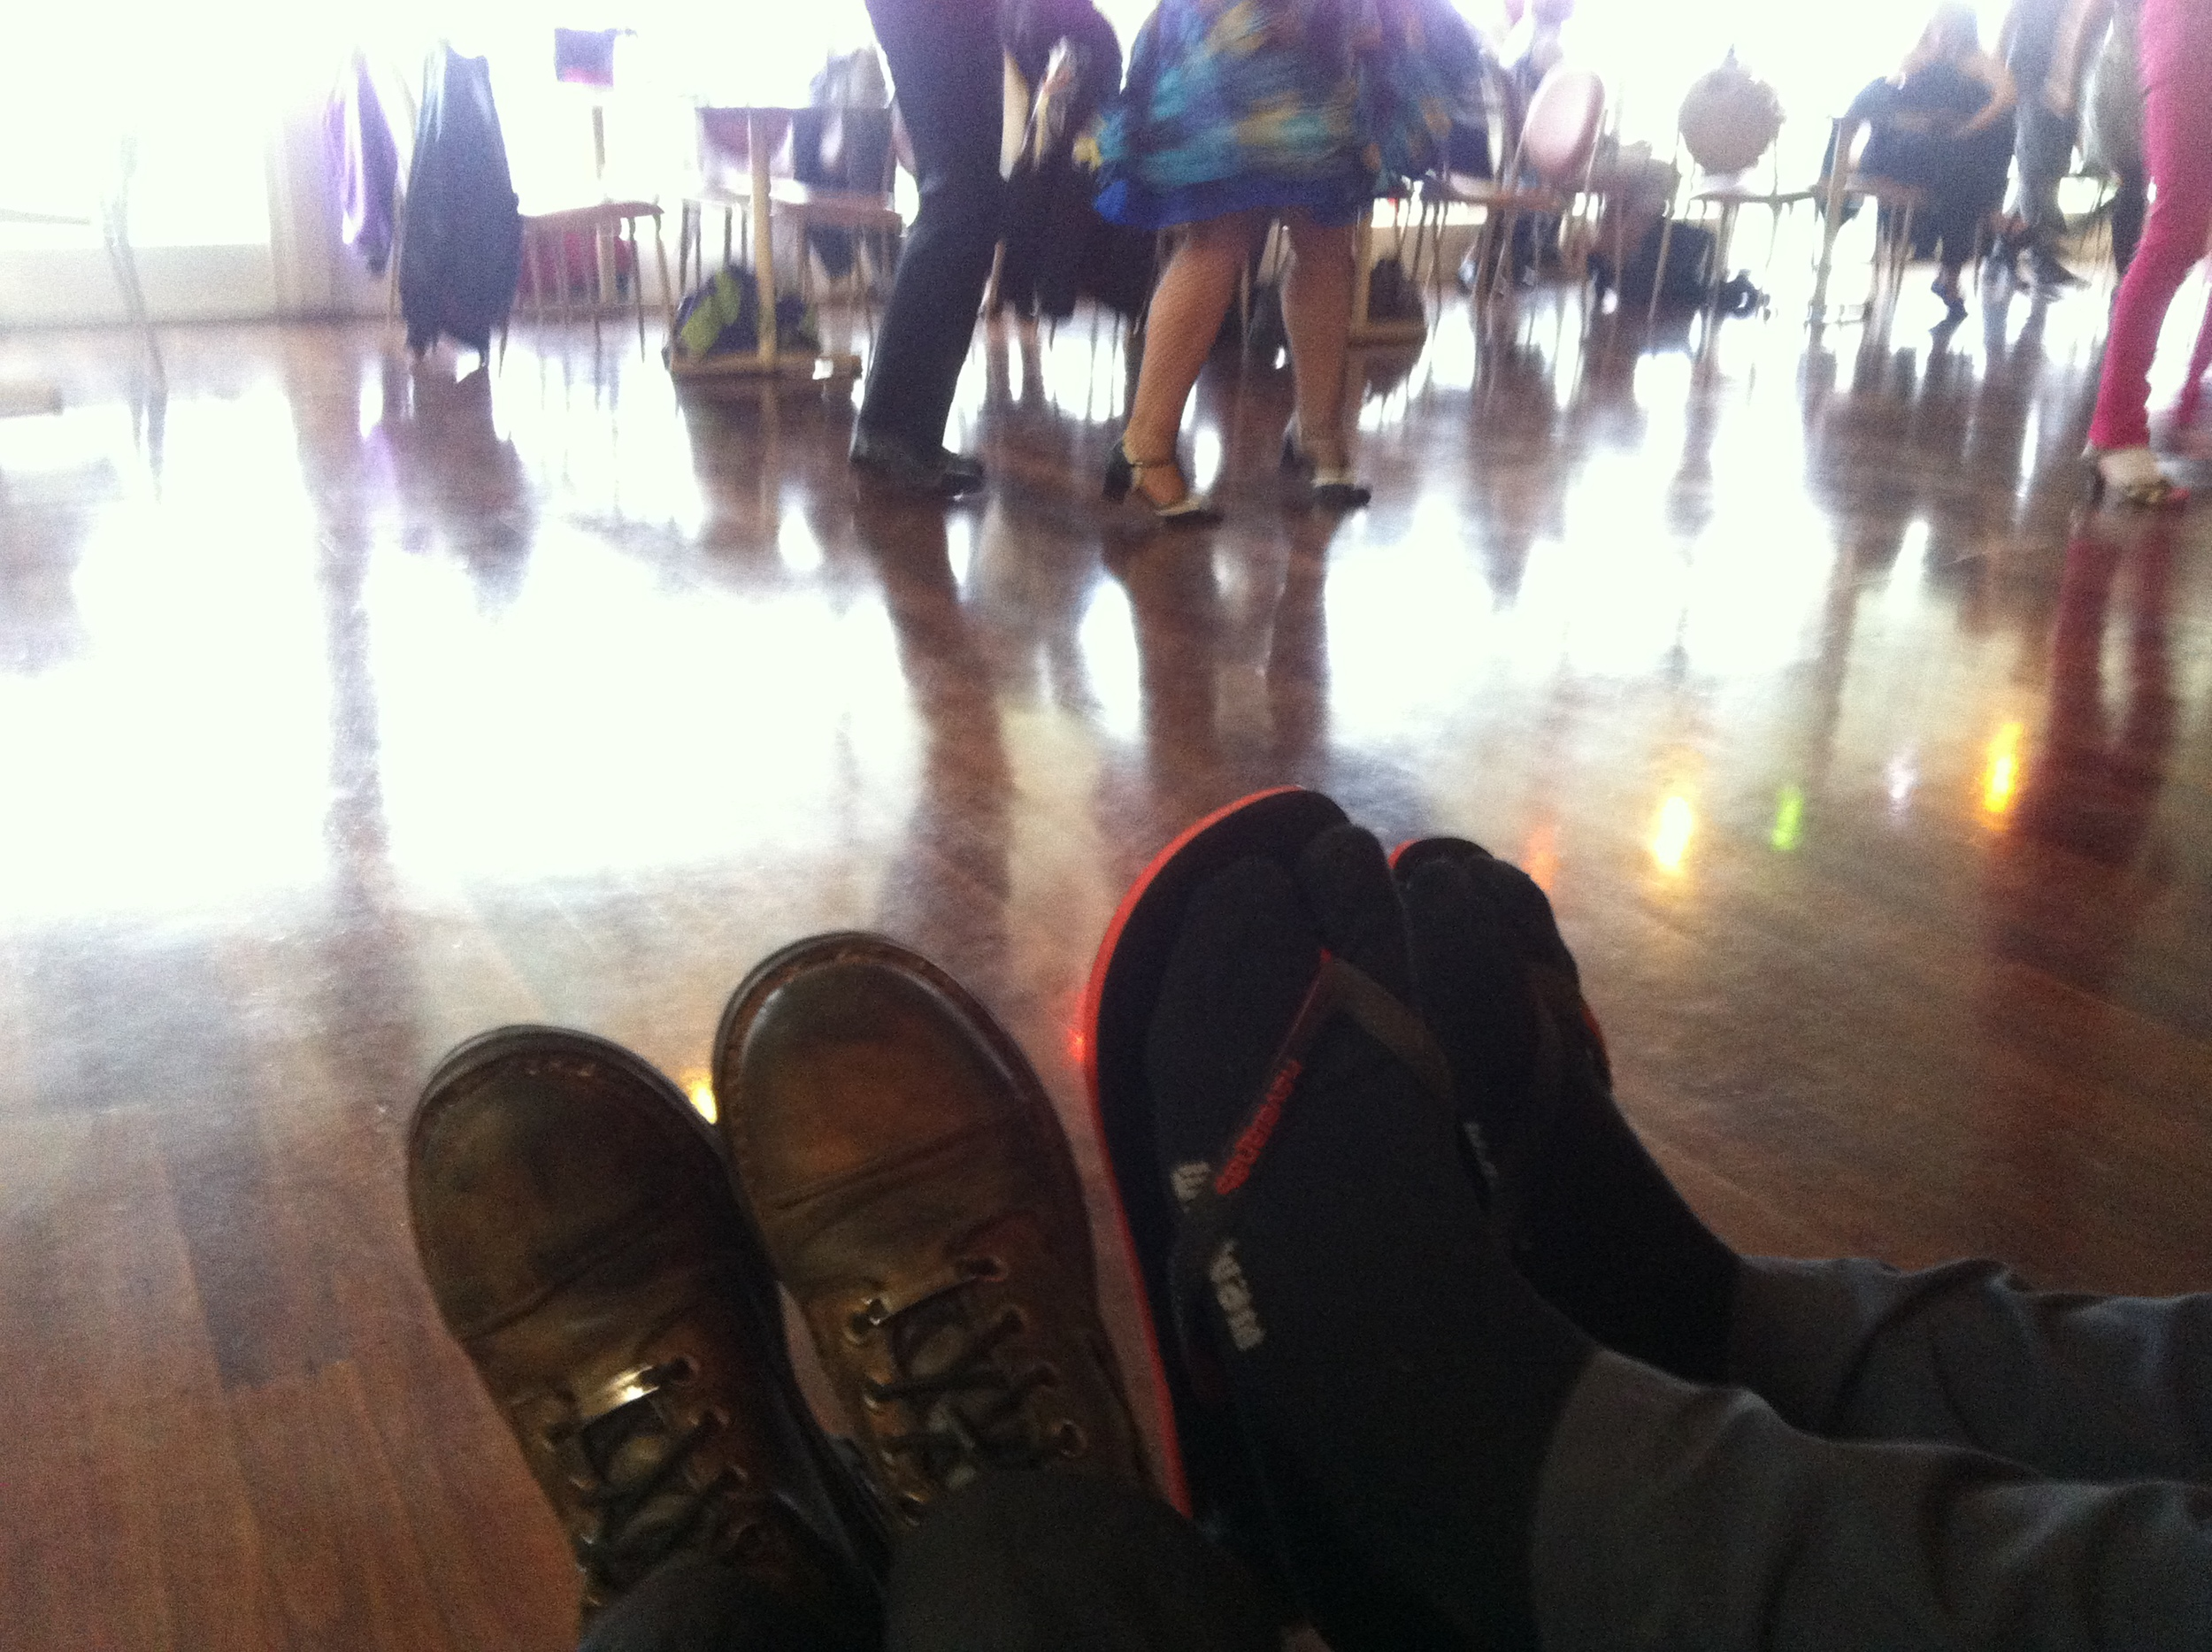 Our Boogie shoes!